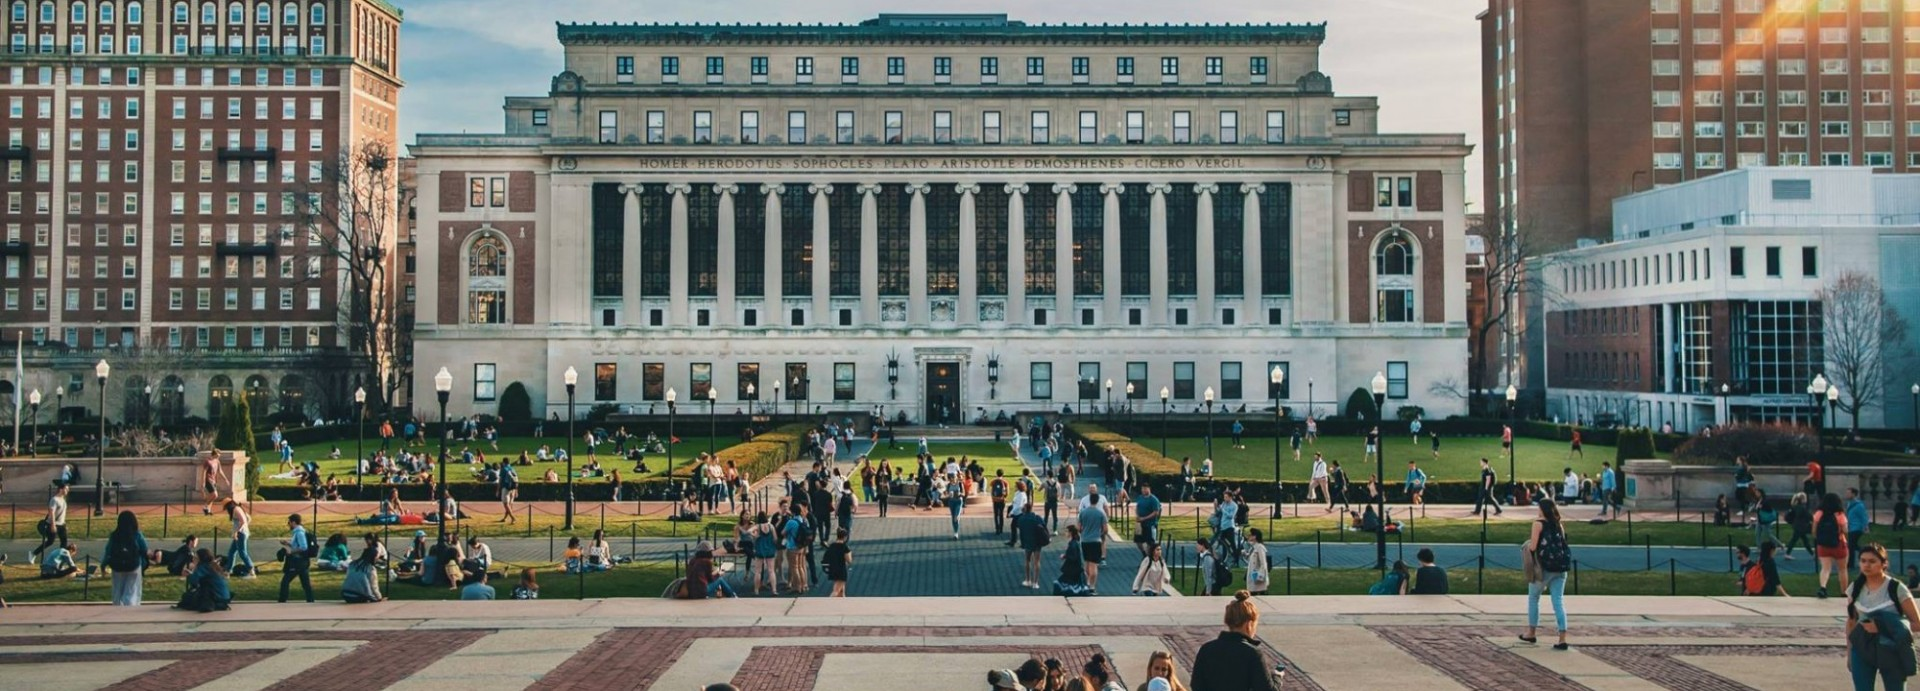 Columbia university is one of the Ivy league schools with the highest tuition fee in the US